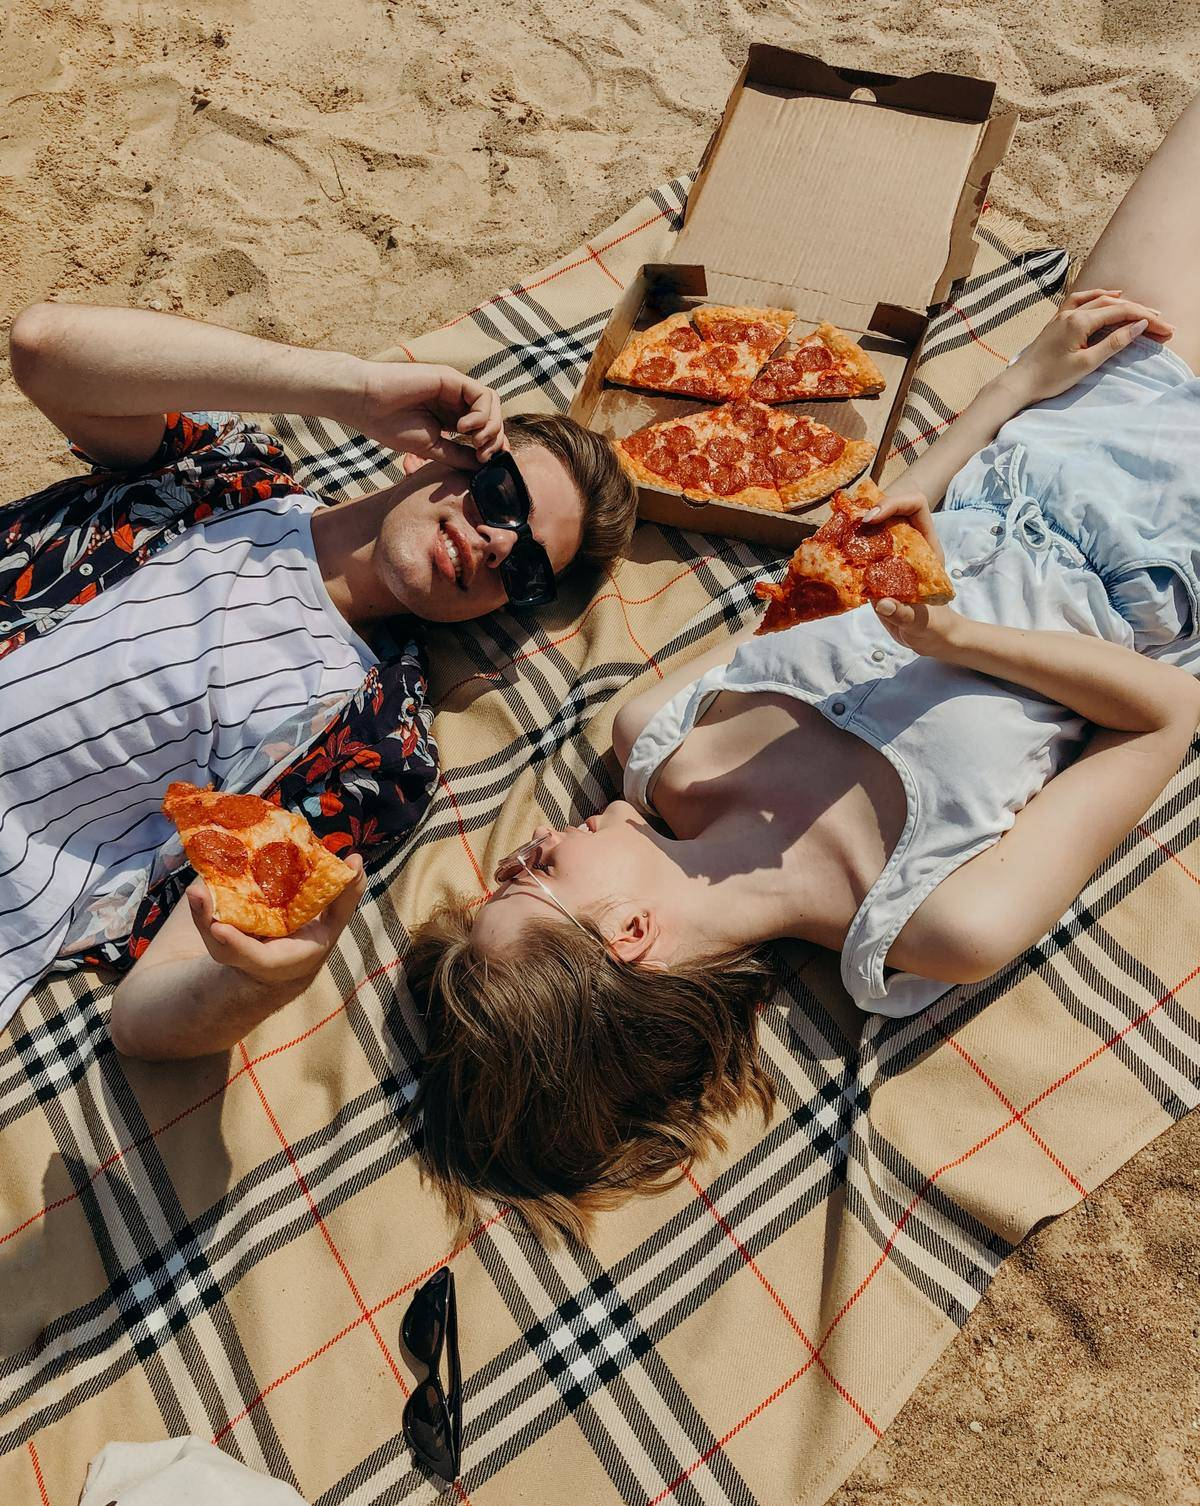 a couple eating pizza on a blanket on the beach